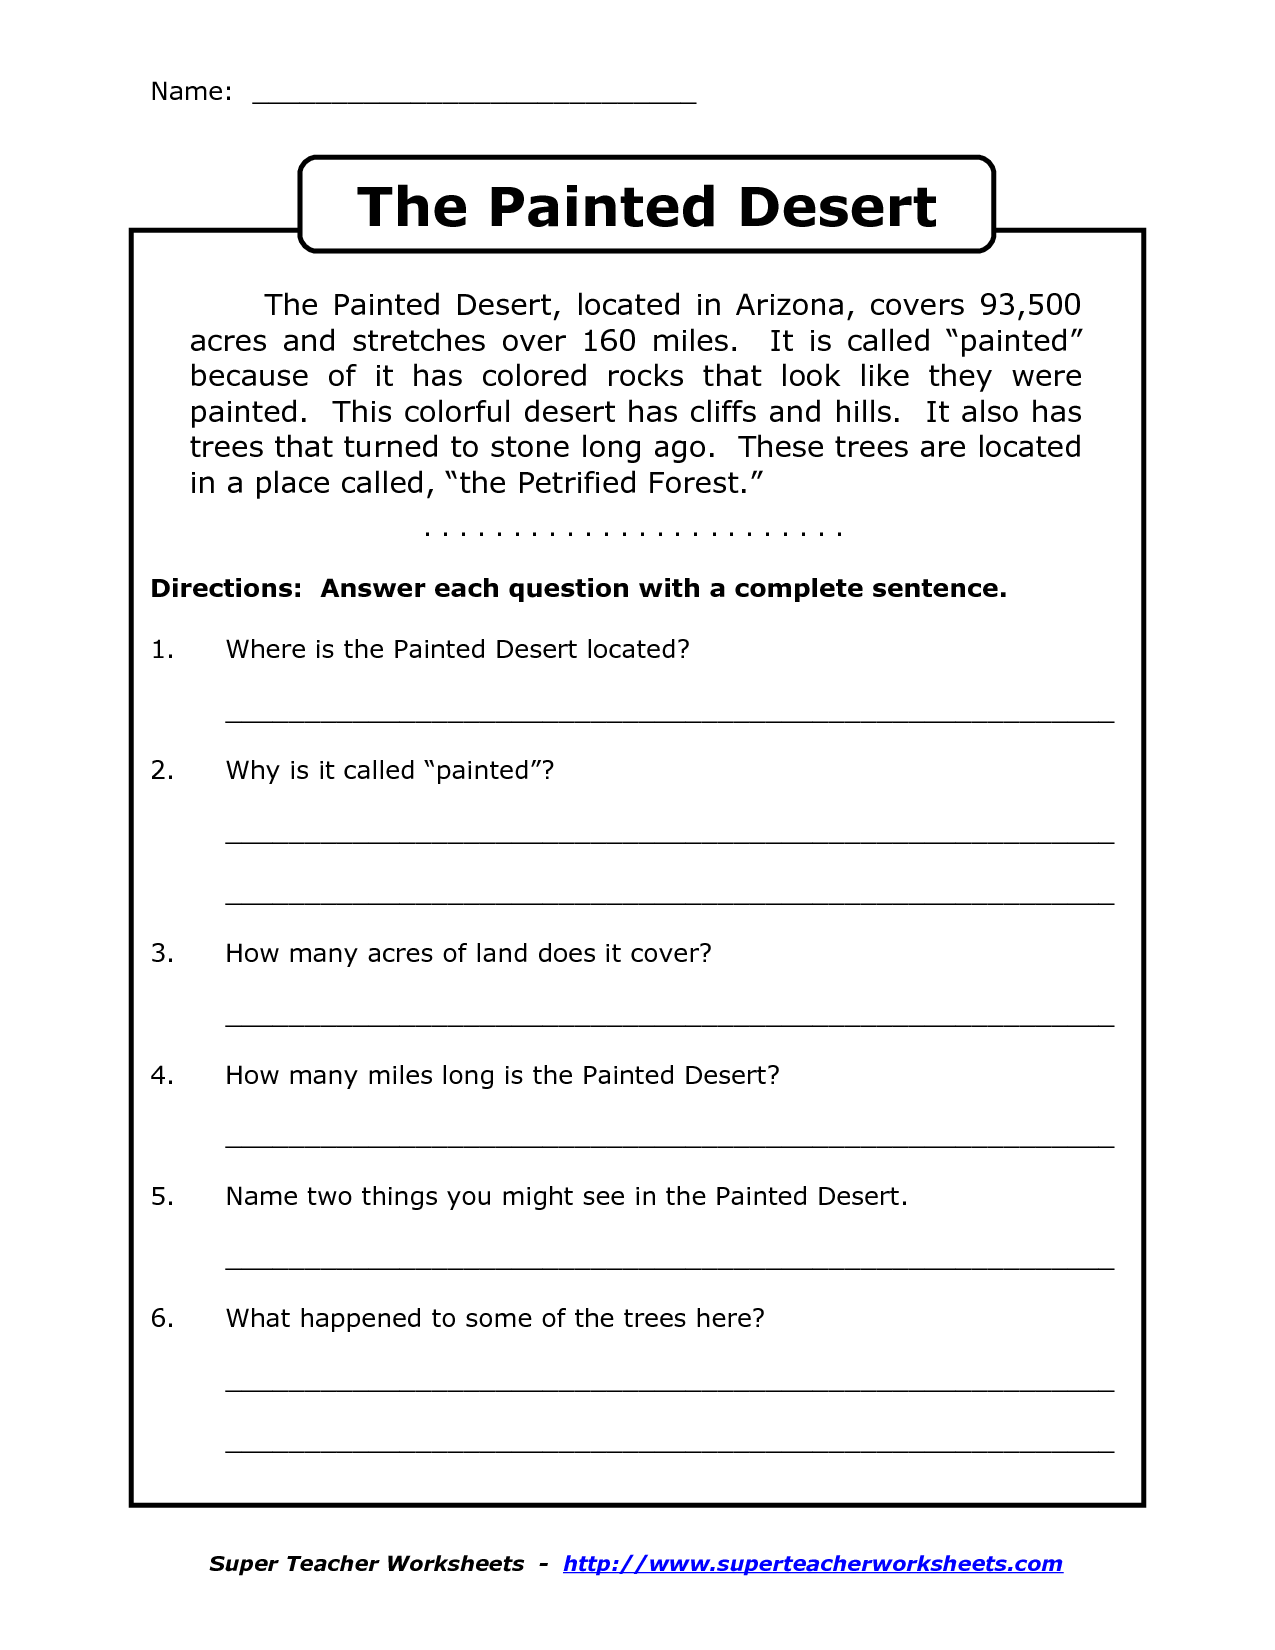 Worksheets 4th Grade Ela Worksheets reading worksheets for 4th grade comprehension 3 name the painted desert